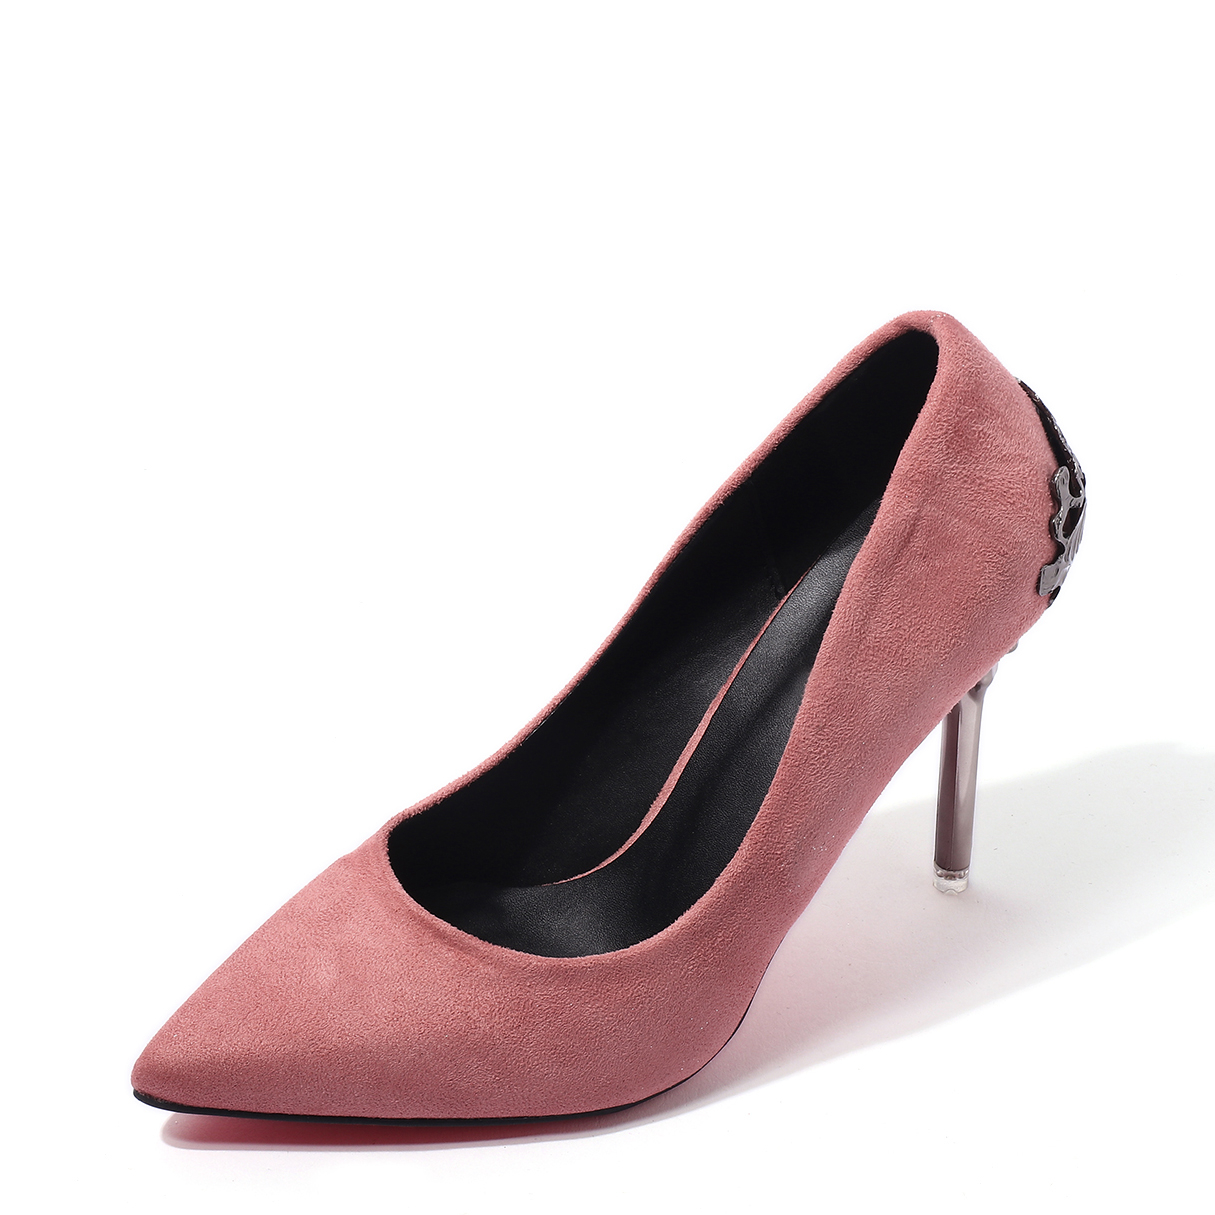 Pink Wedding Frosted Suede Stiletto Solid Color Pumps spring autumn fashion pointed toe high heels solid causal women pumps shoes faux velvet female work pumps wedding shoes 302 1ve